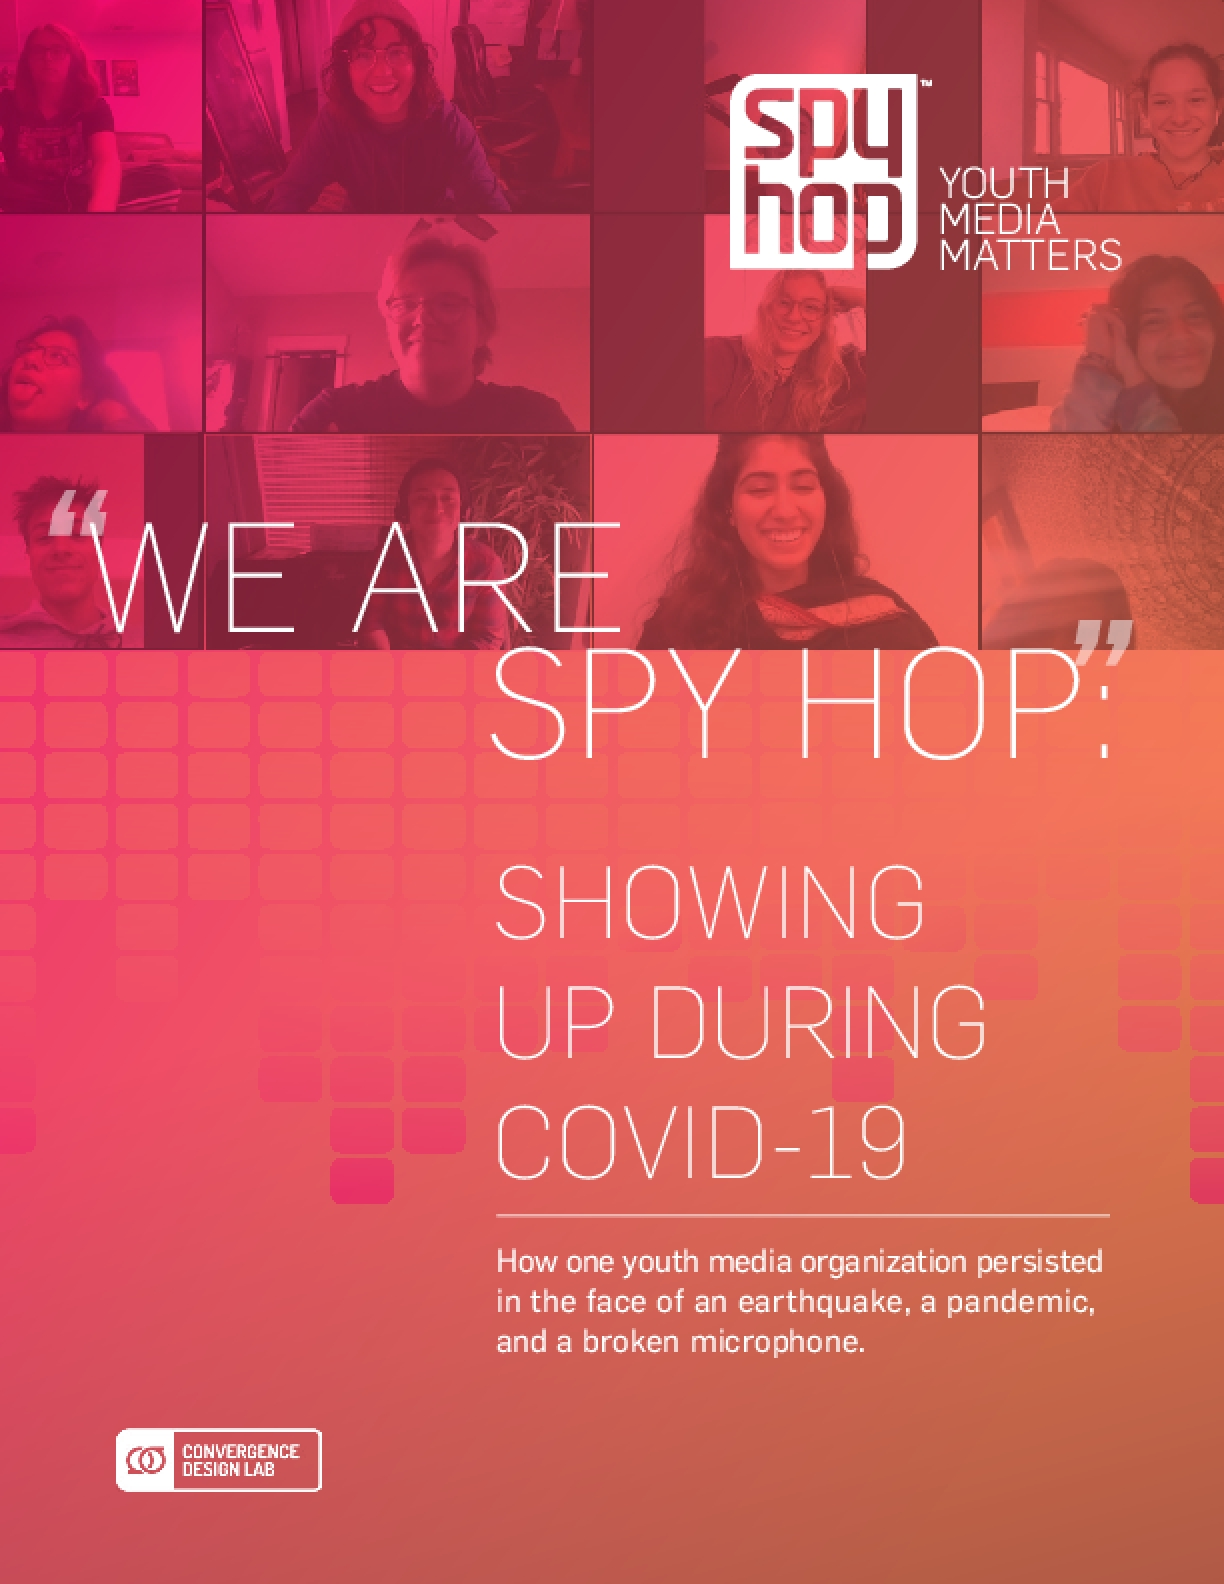 We are Spy Hop: Showing Up During COVID-19